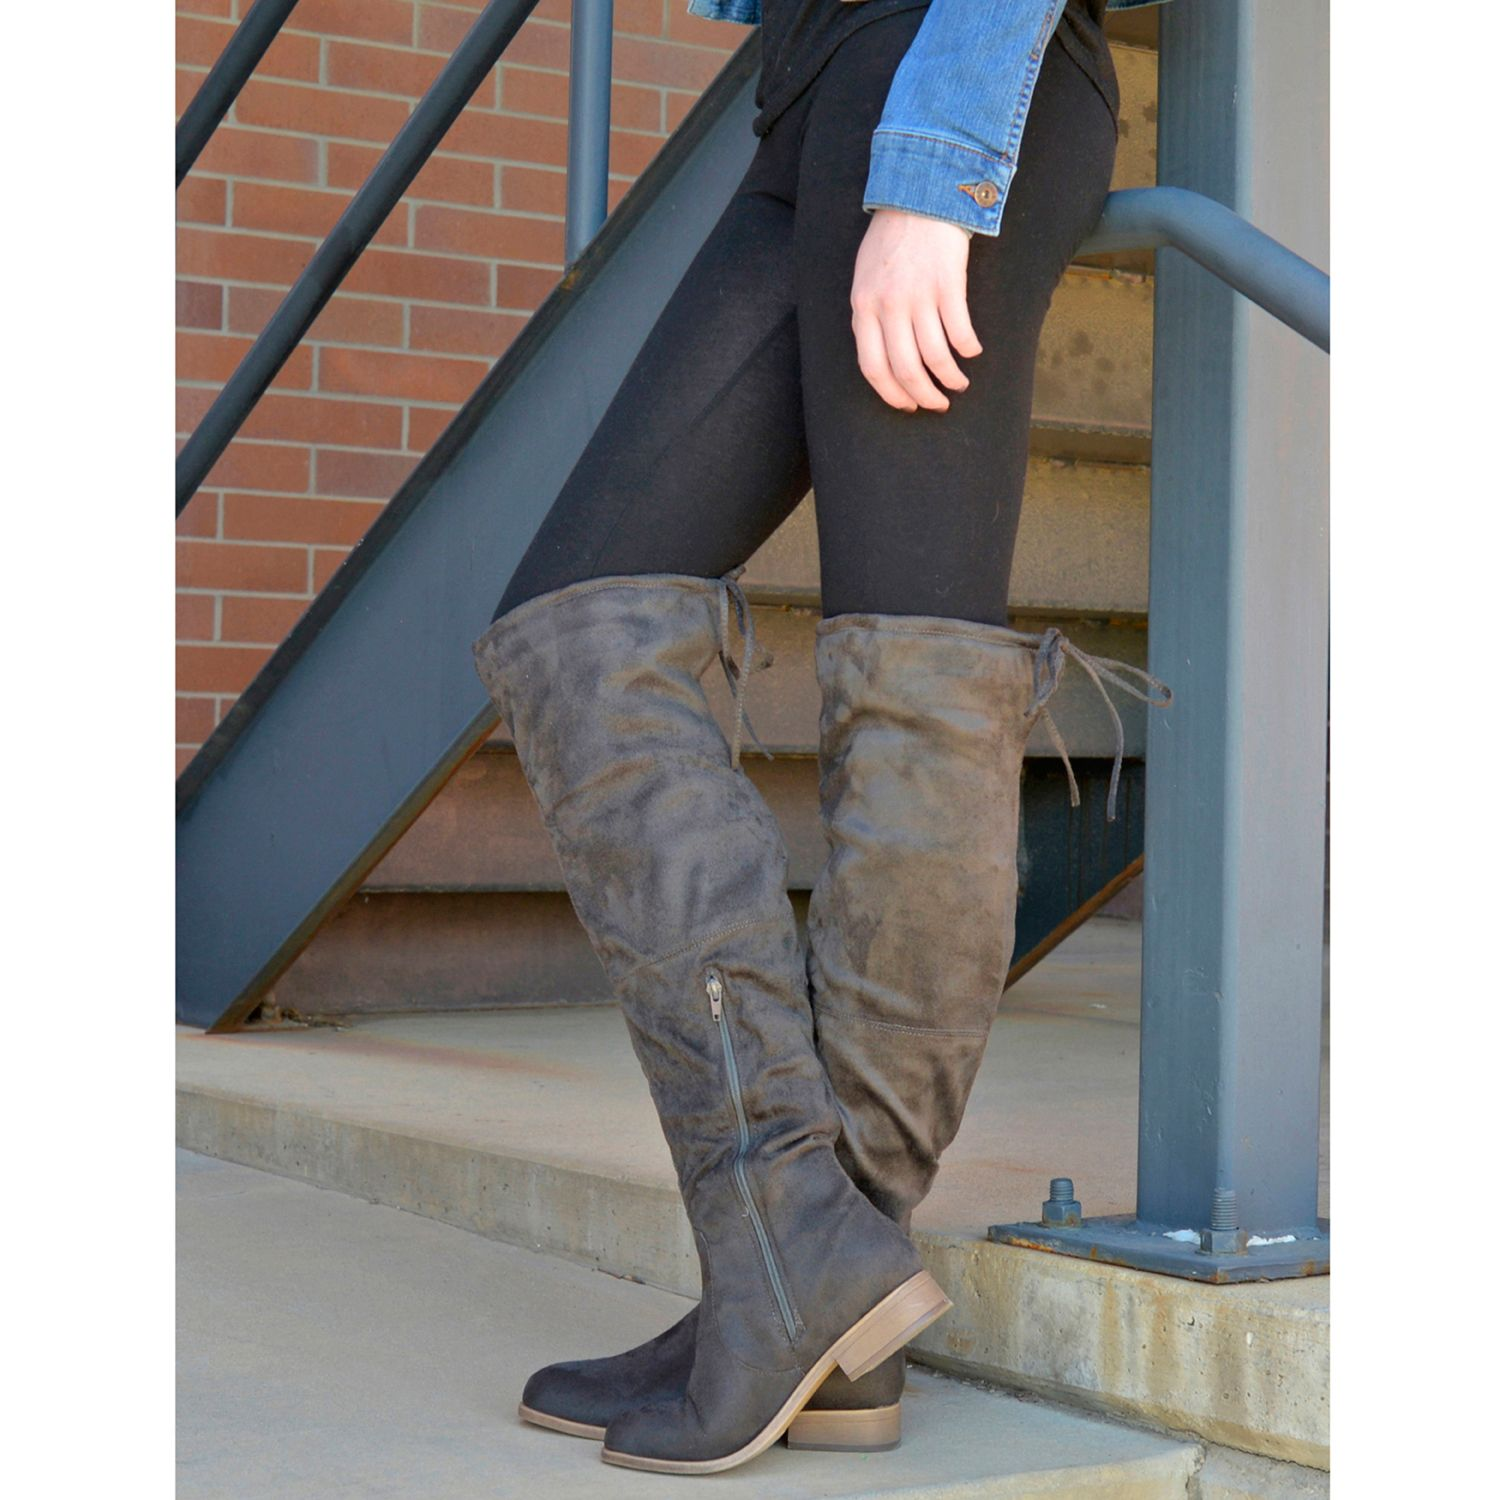 128a7dcb696 Womens Over-the-Knee Boots - Shoes